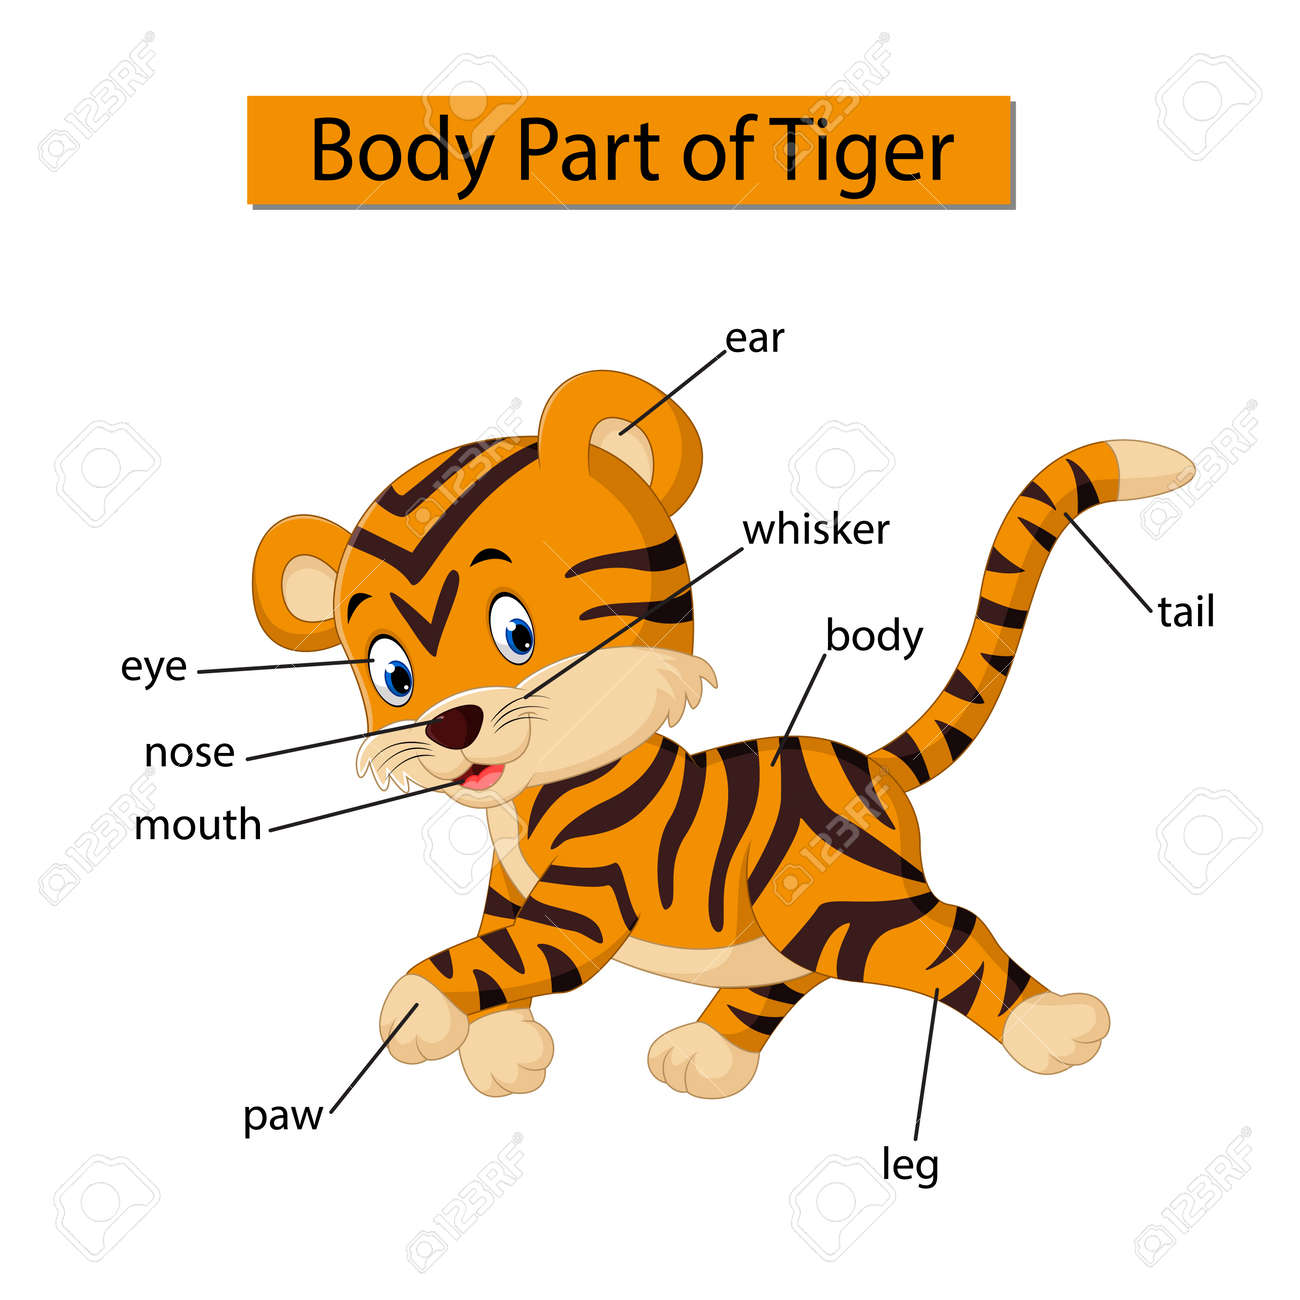 hight resolution of diagram showing body part of tiger stock photo 121266441